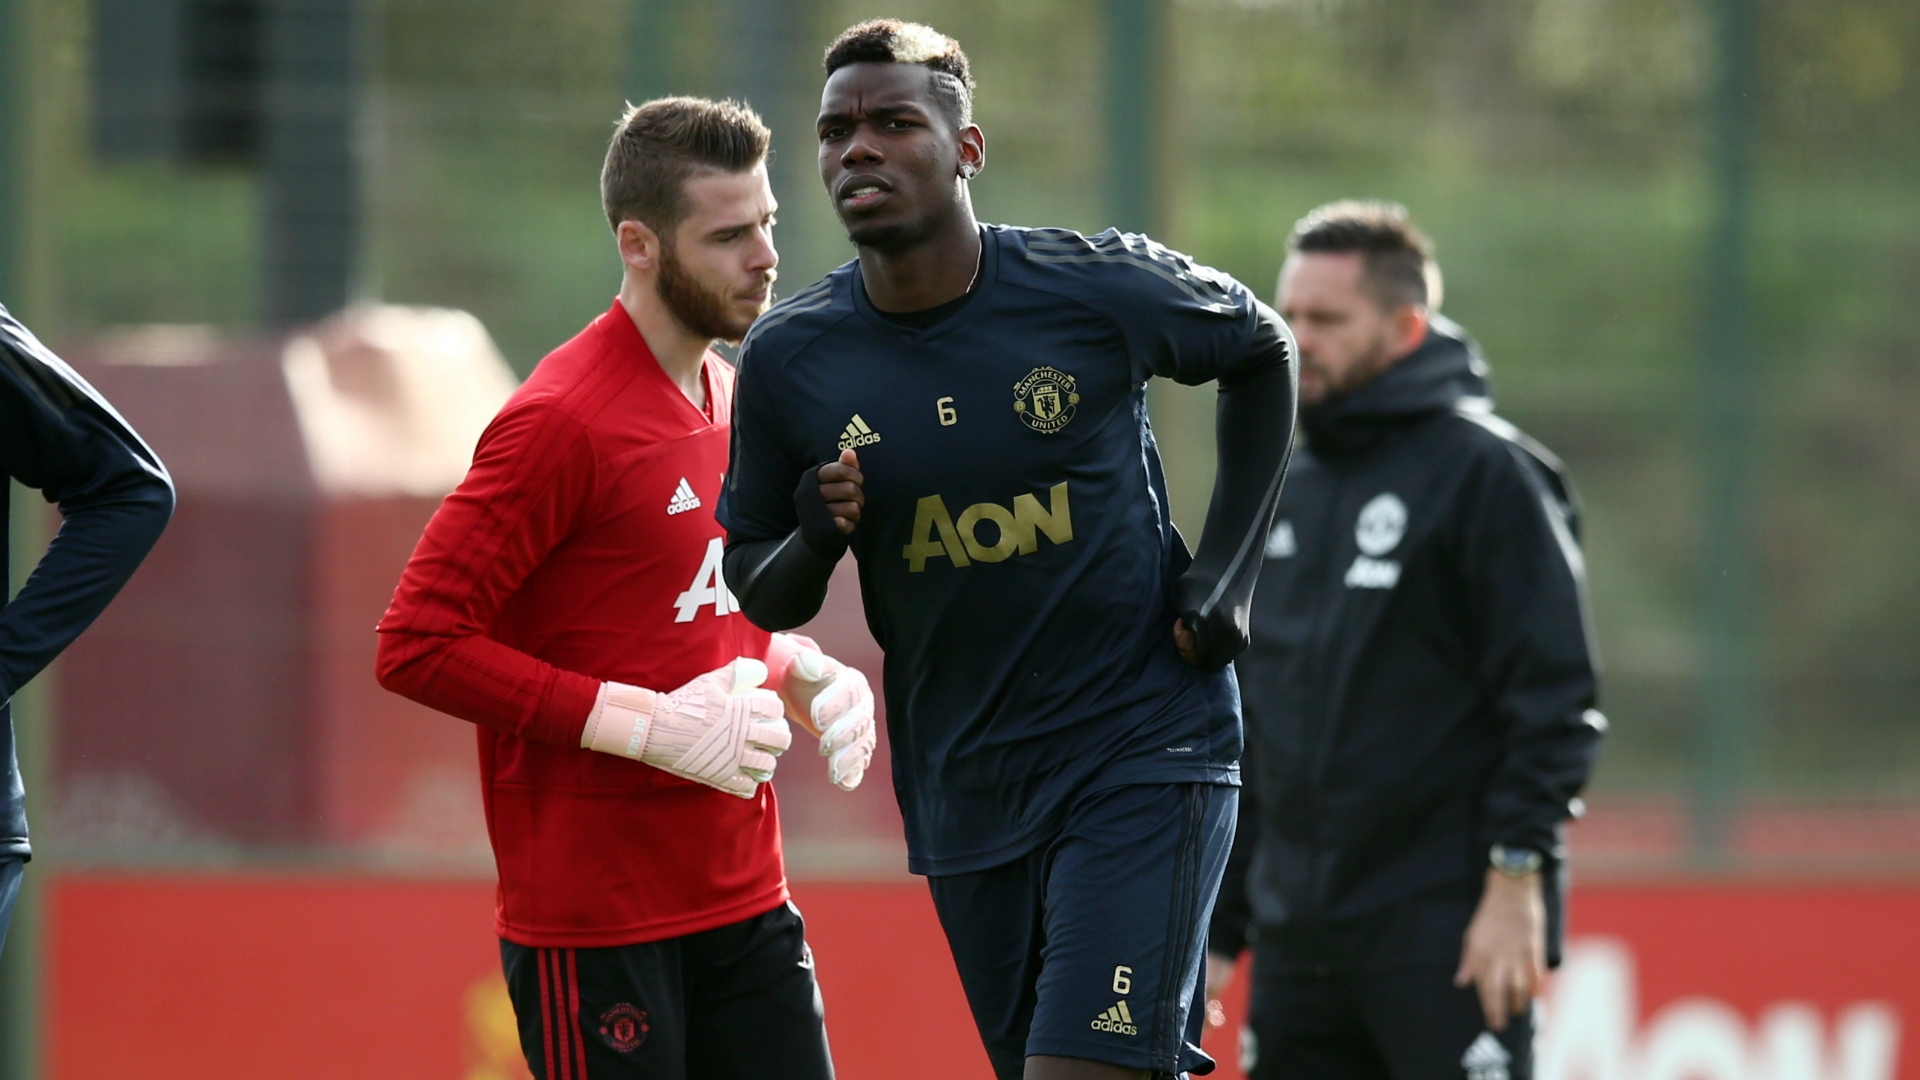 Paul Pogba - Manchester United, France